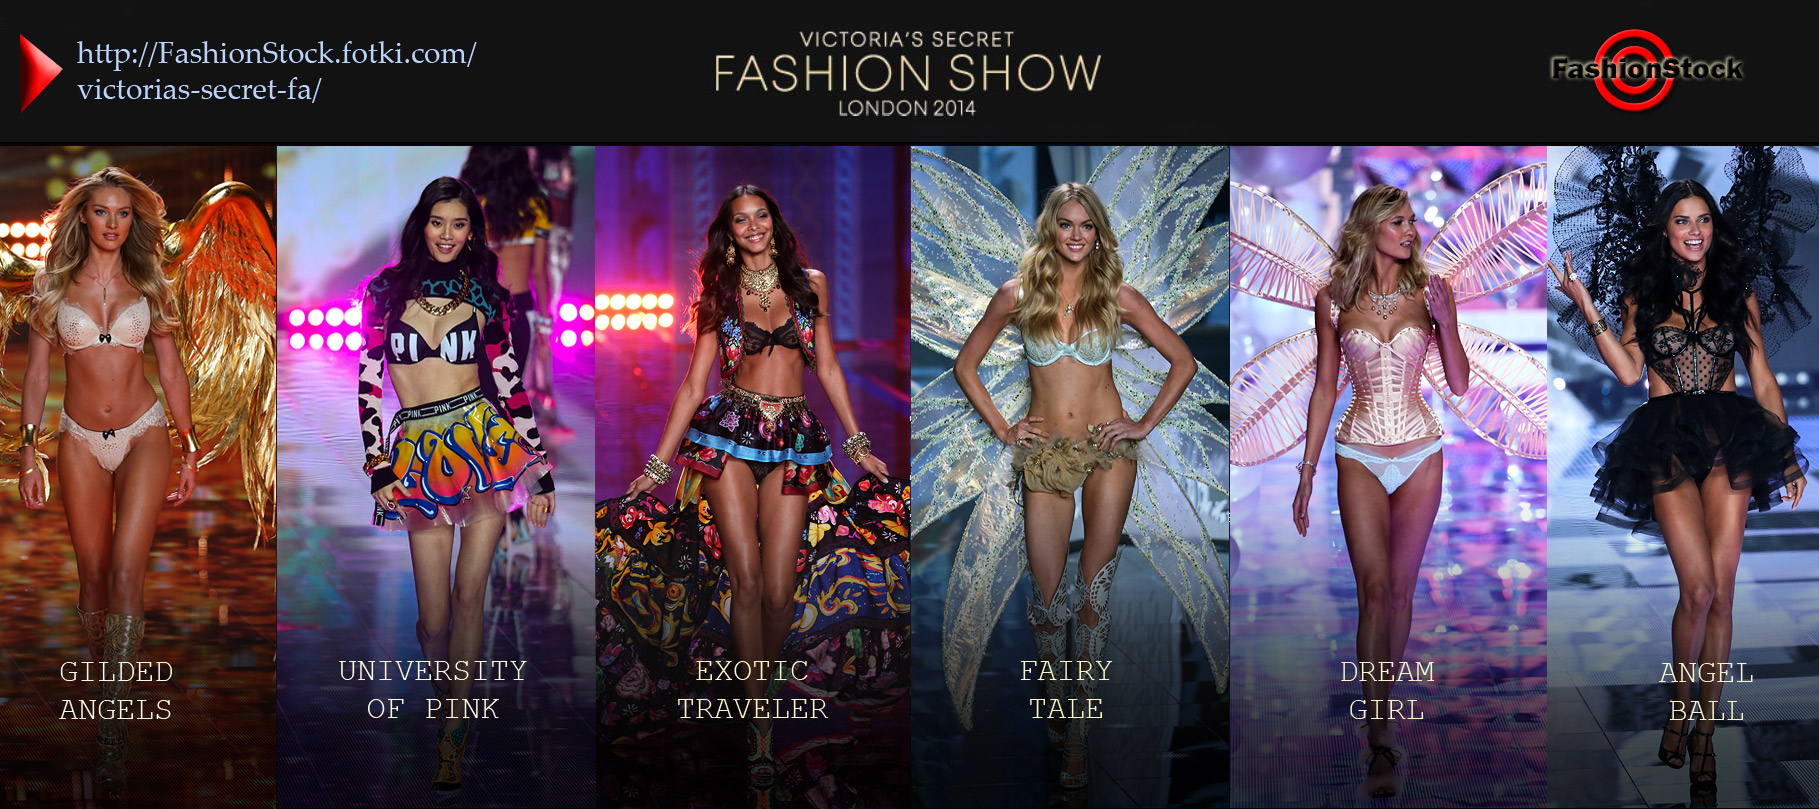 Victoria's Secret Fashion Show - LONDON 2014